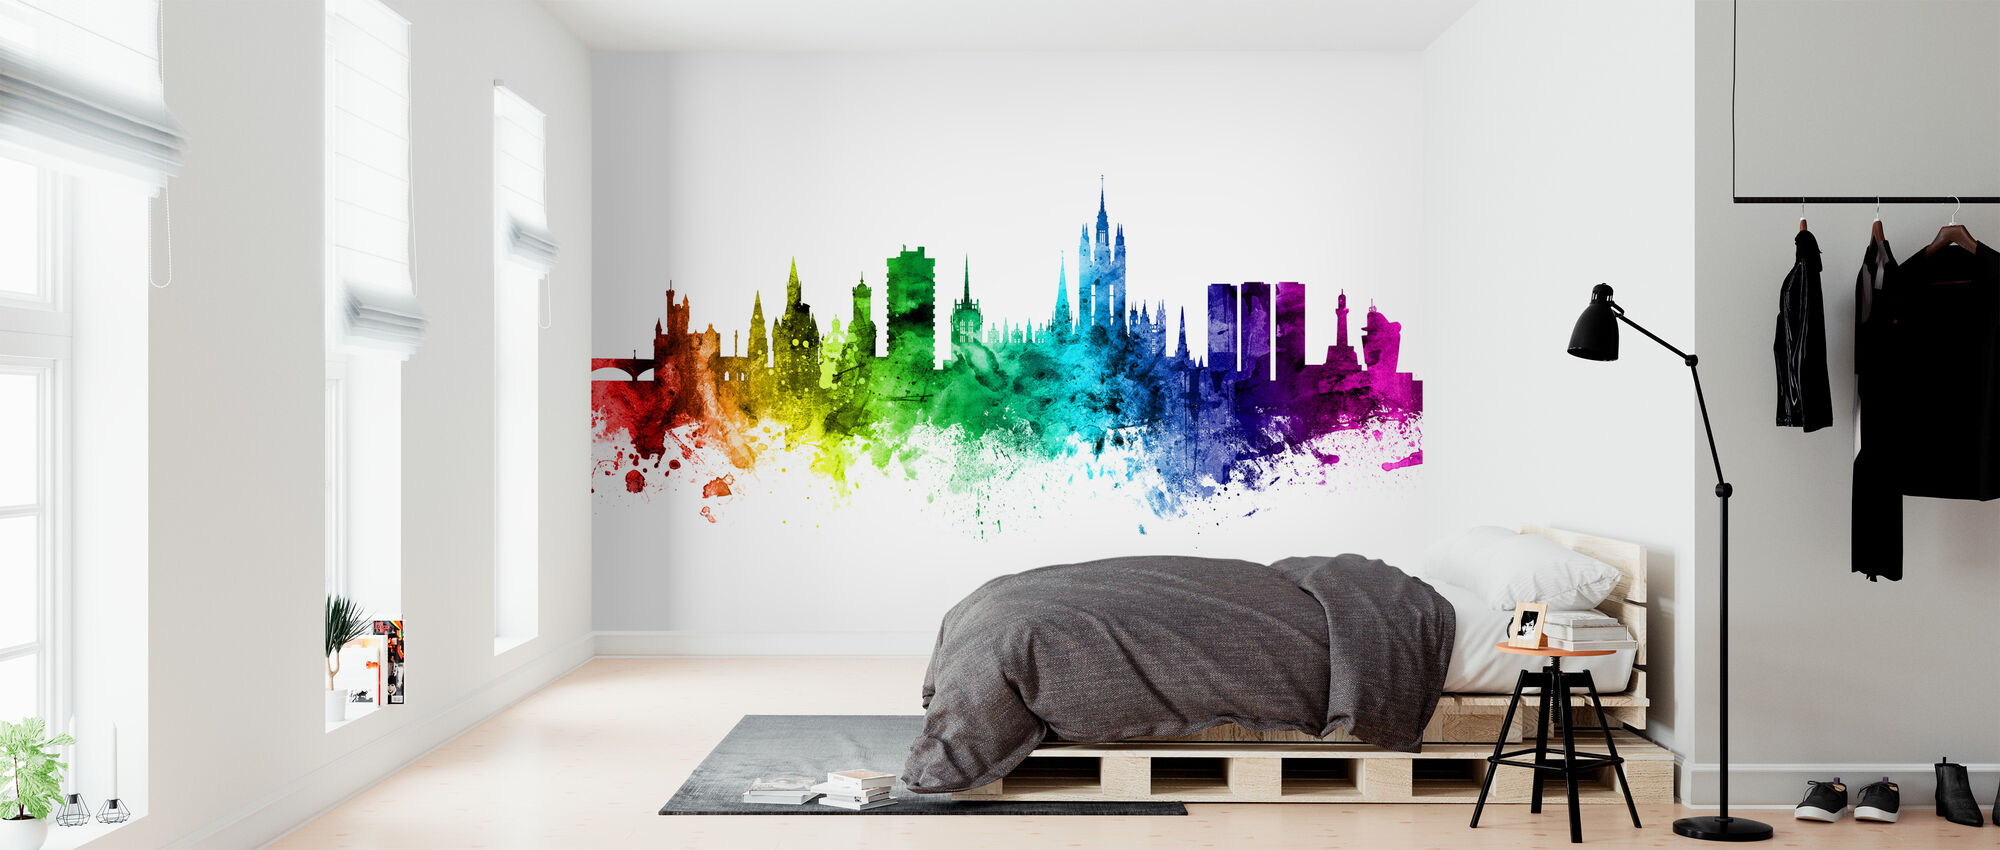 Aberdeen Skyline Rainbow - Wallpaper - Bedroom